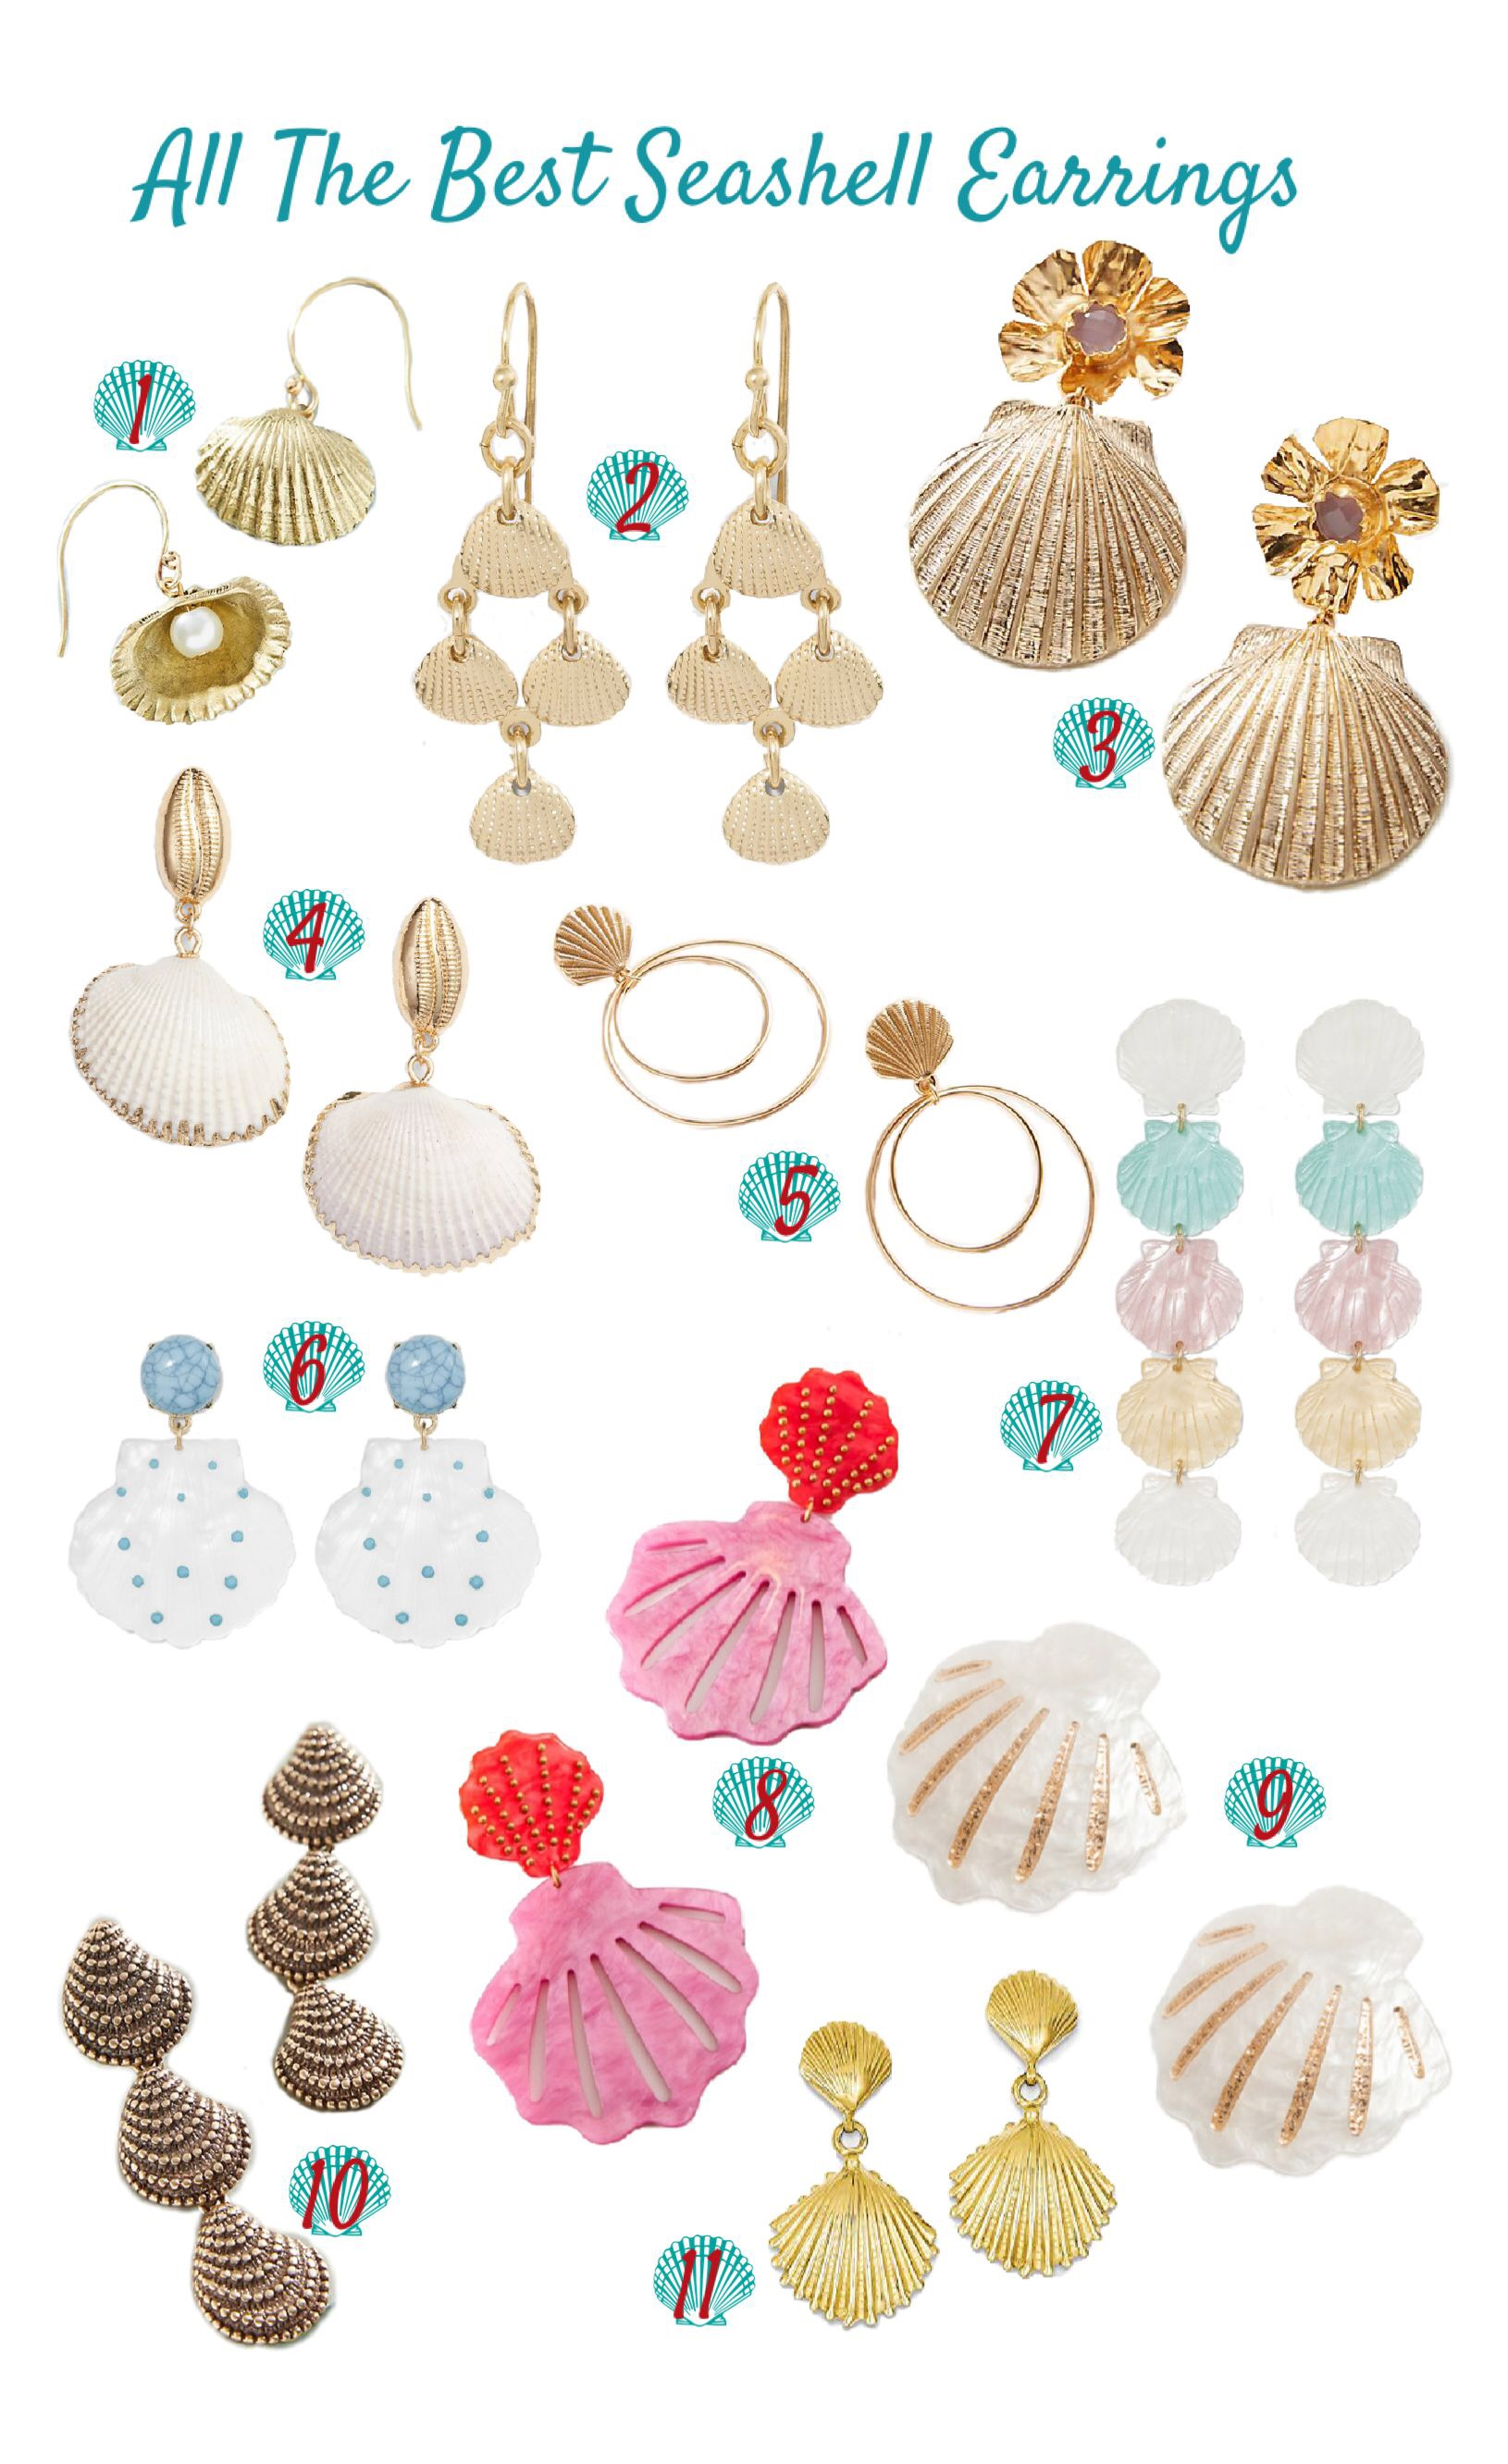 All The Best Seashell Earrings